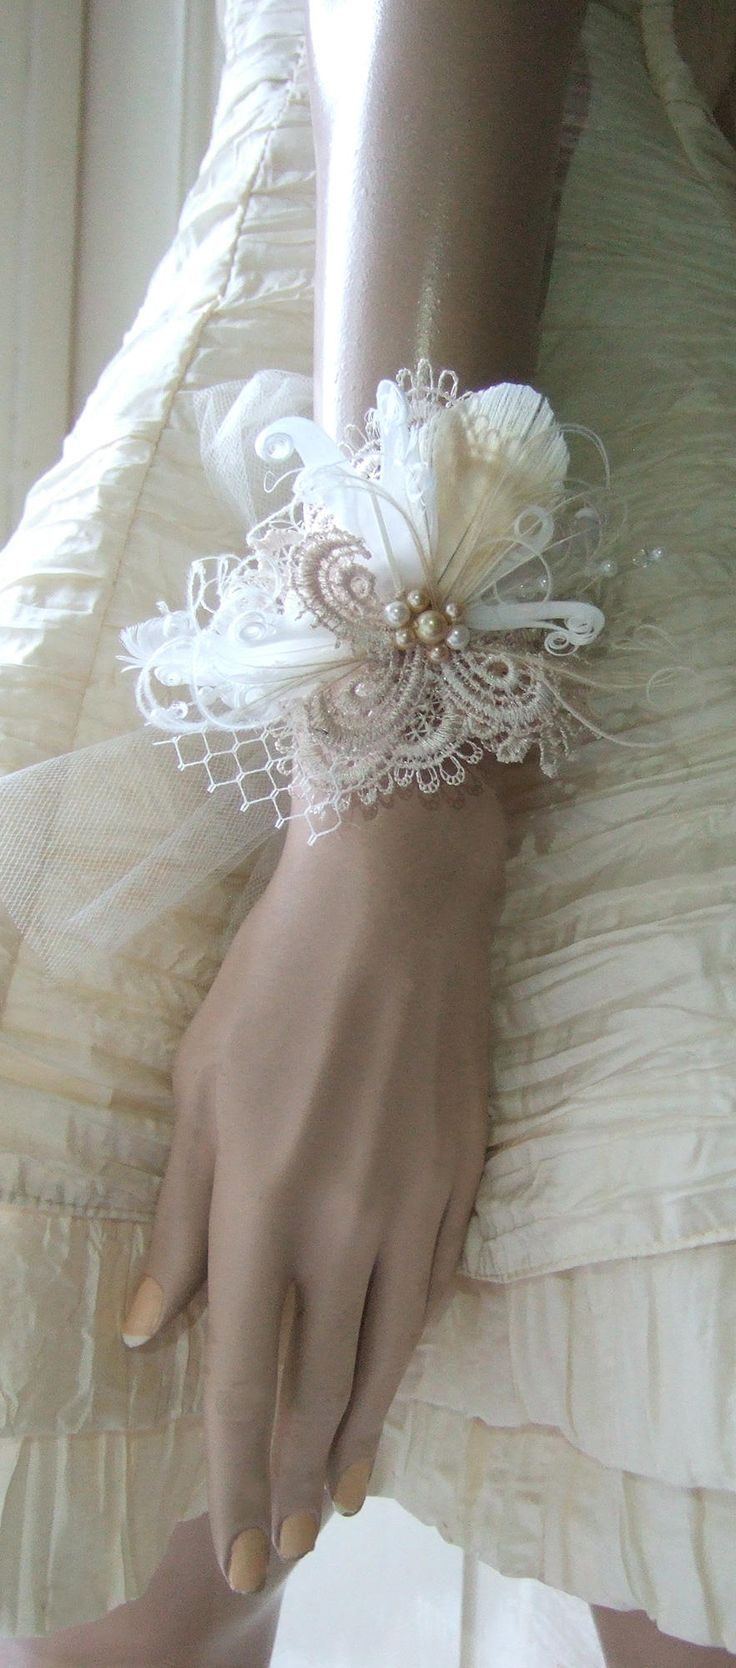 Hand Made Bridal Wedding Wrist Corsage $75.00 in Ivory Cream and White. Lace Guipure in Palest Beige, Ivory Veiling and Tulle, Light Gold and Ivory Pearls and Clear Swaroski Crystals. Wear a simple bridal gown dress and accessorise. Really Pretty for those adopting the Vintage Inspired or Fairytale, Boho, or 20's Gatsby Themed wedding. #bridal #wristcorsage #bridalwear #bridalcorsage #lace #guipure #bride #vintagetheme #shopsmall #bridal #ootd #fashion #gatsbywedding